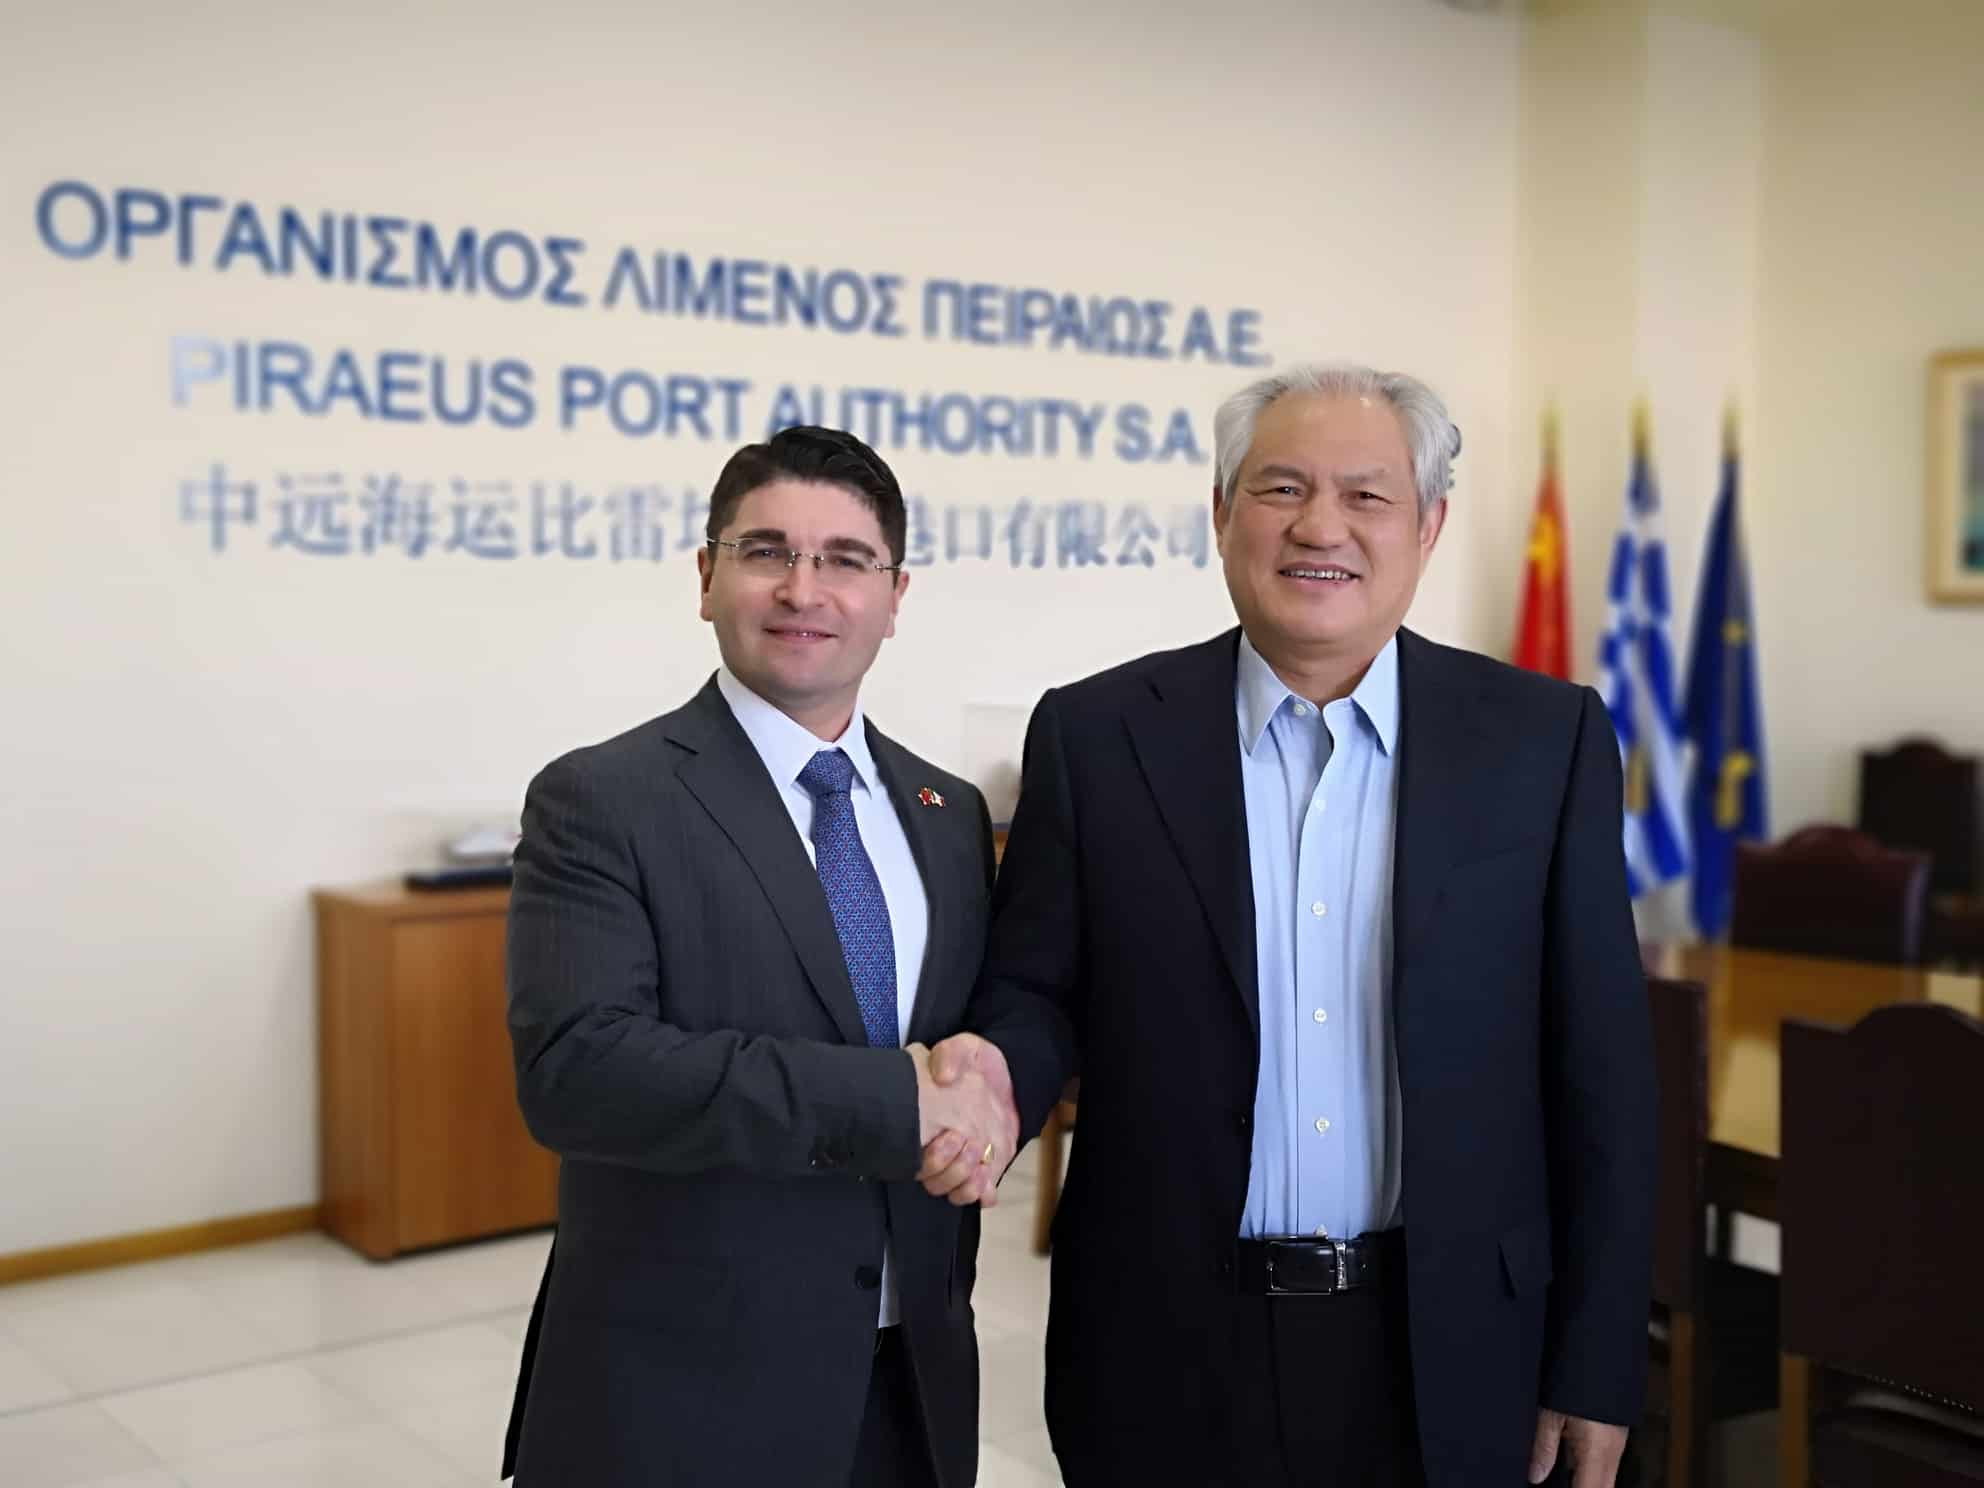 Piraeus, Venice and Chiogga agree to strengthen cargo flow